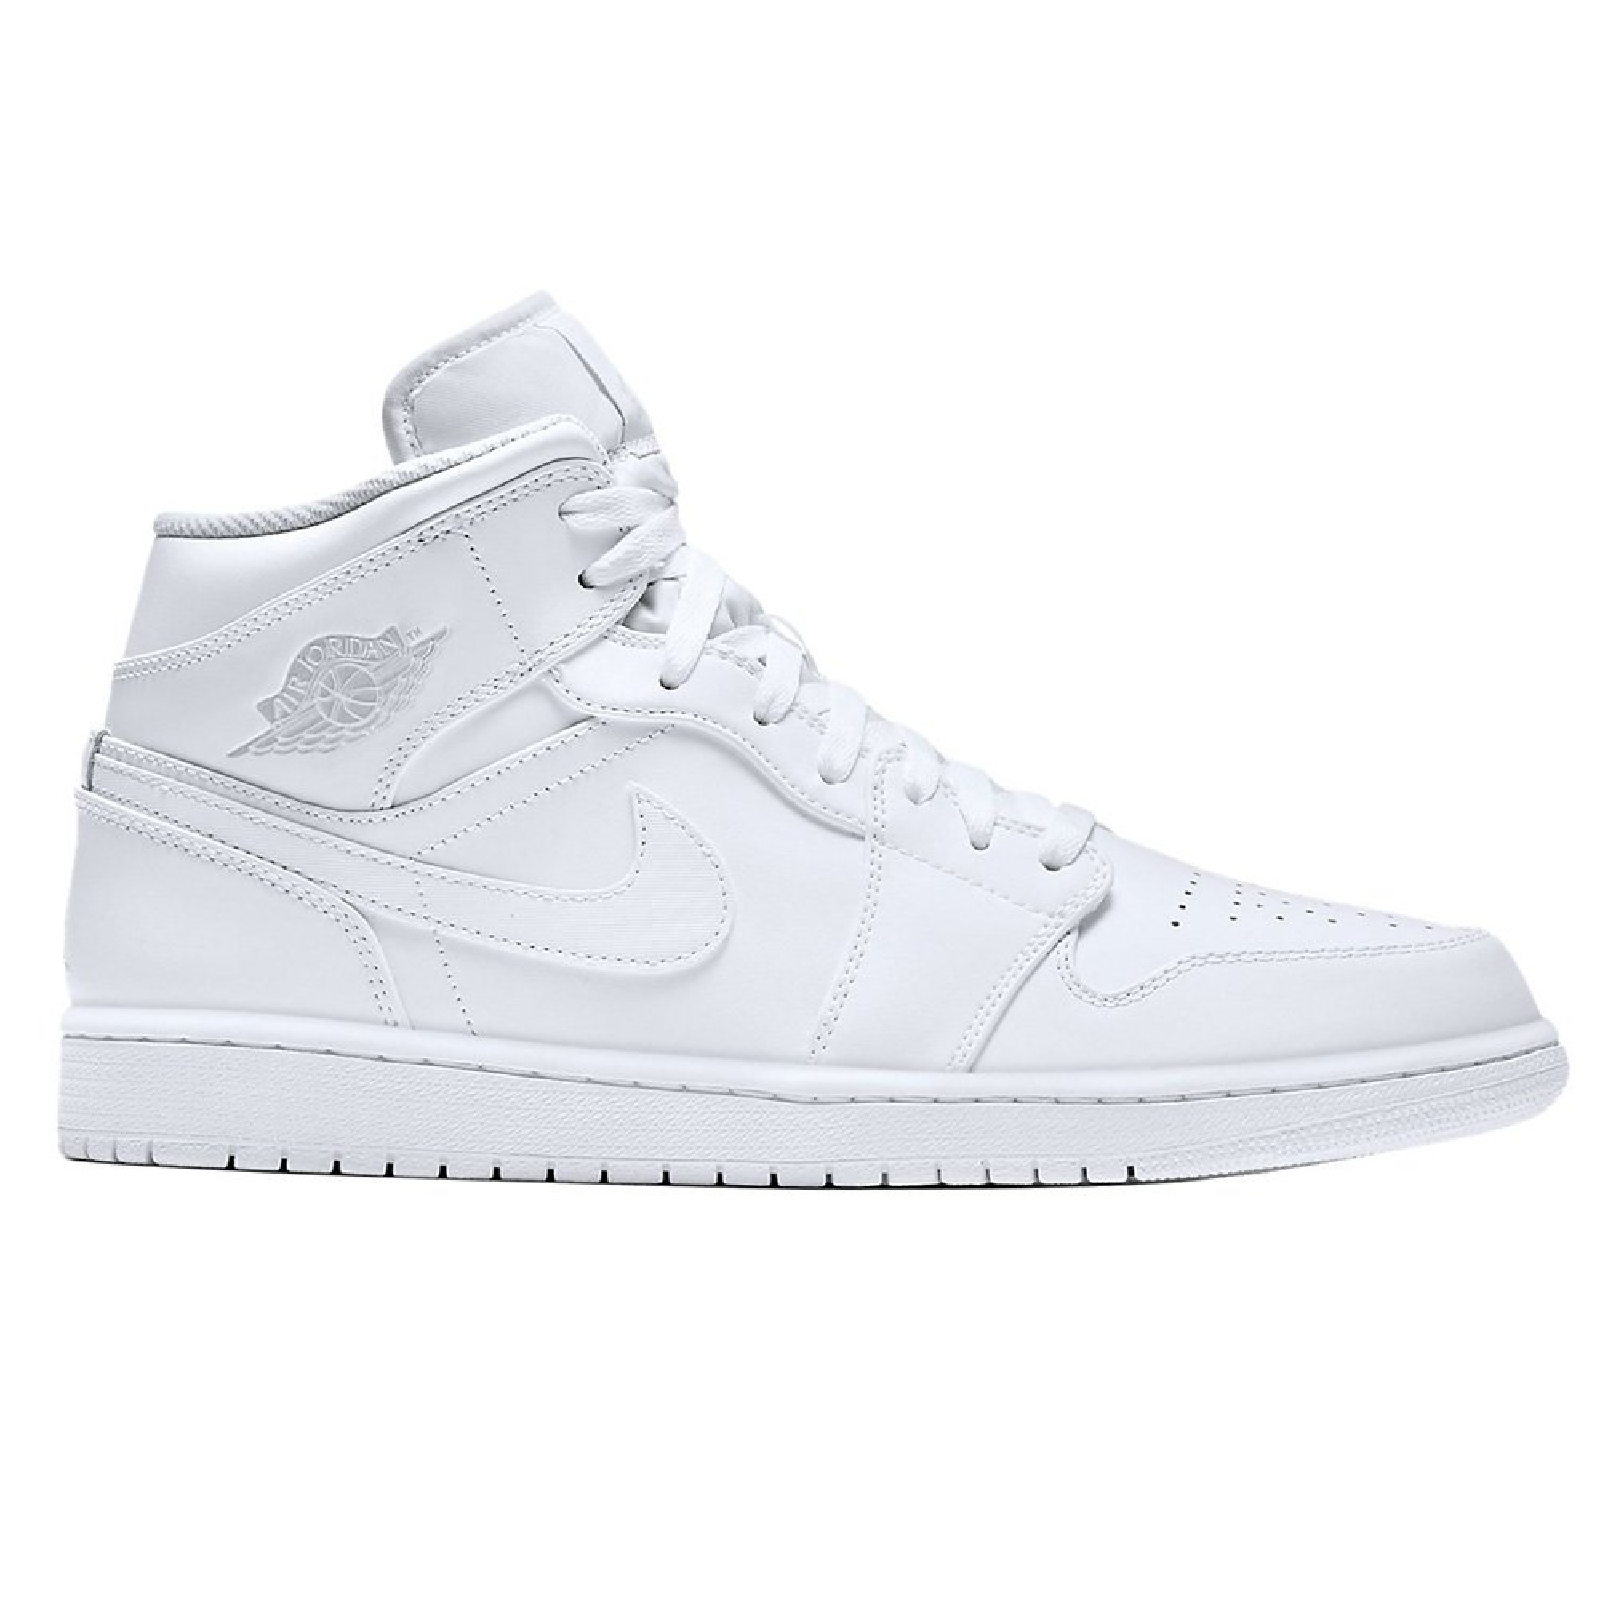 fa2b337cca7 Details about Nike Air Jordan 1 MID LEA all white Men´s SneakersSport Shoes  554724 104 SALE